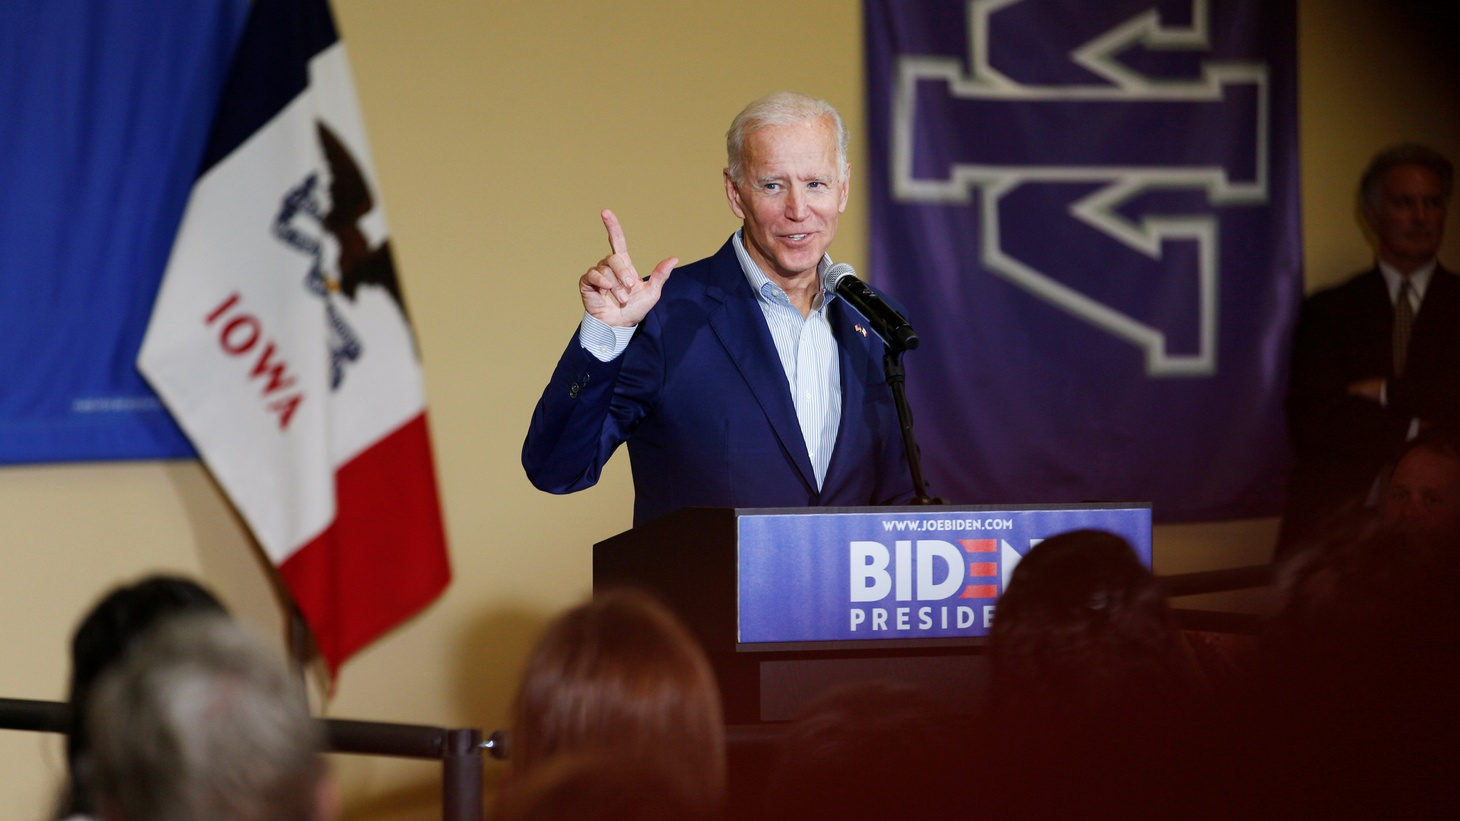 Democratic 2020 U.S. presidential candidate and former Vice President Joe Biden speaks at an event at Iowa Wesleyan University in Mount Pleasant, Iowa, U.S. June 11, 2019.